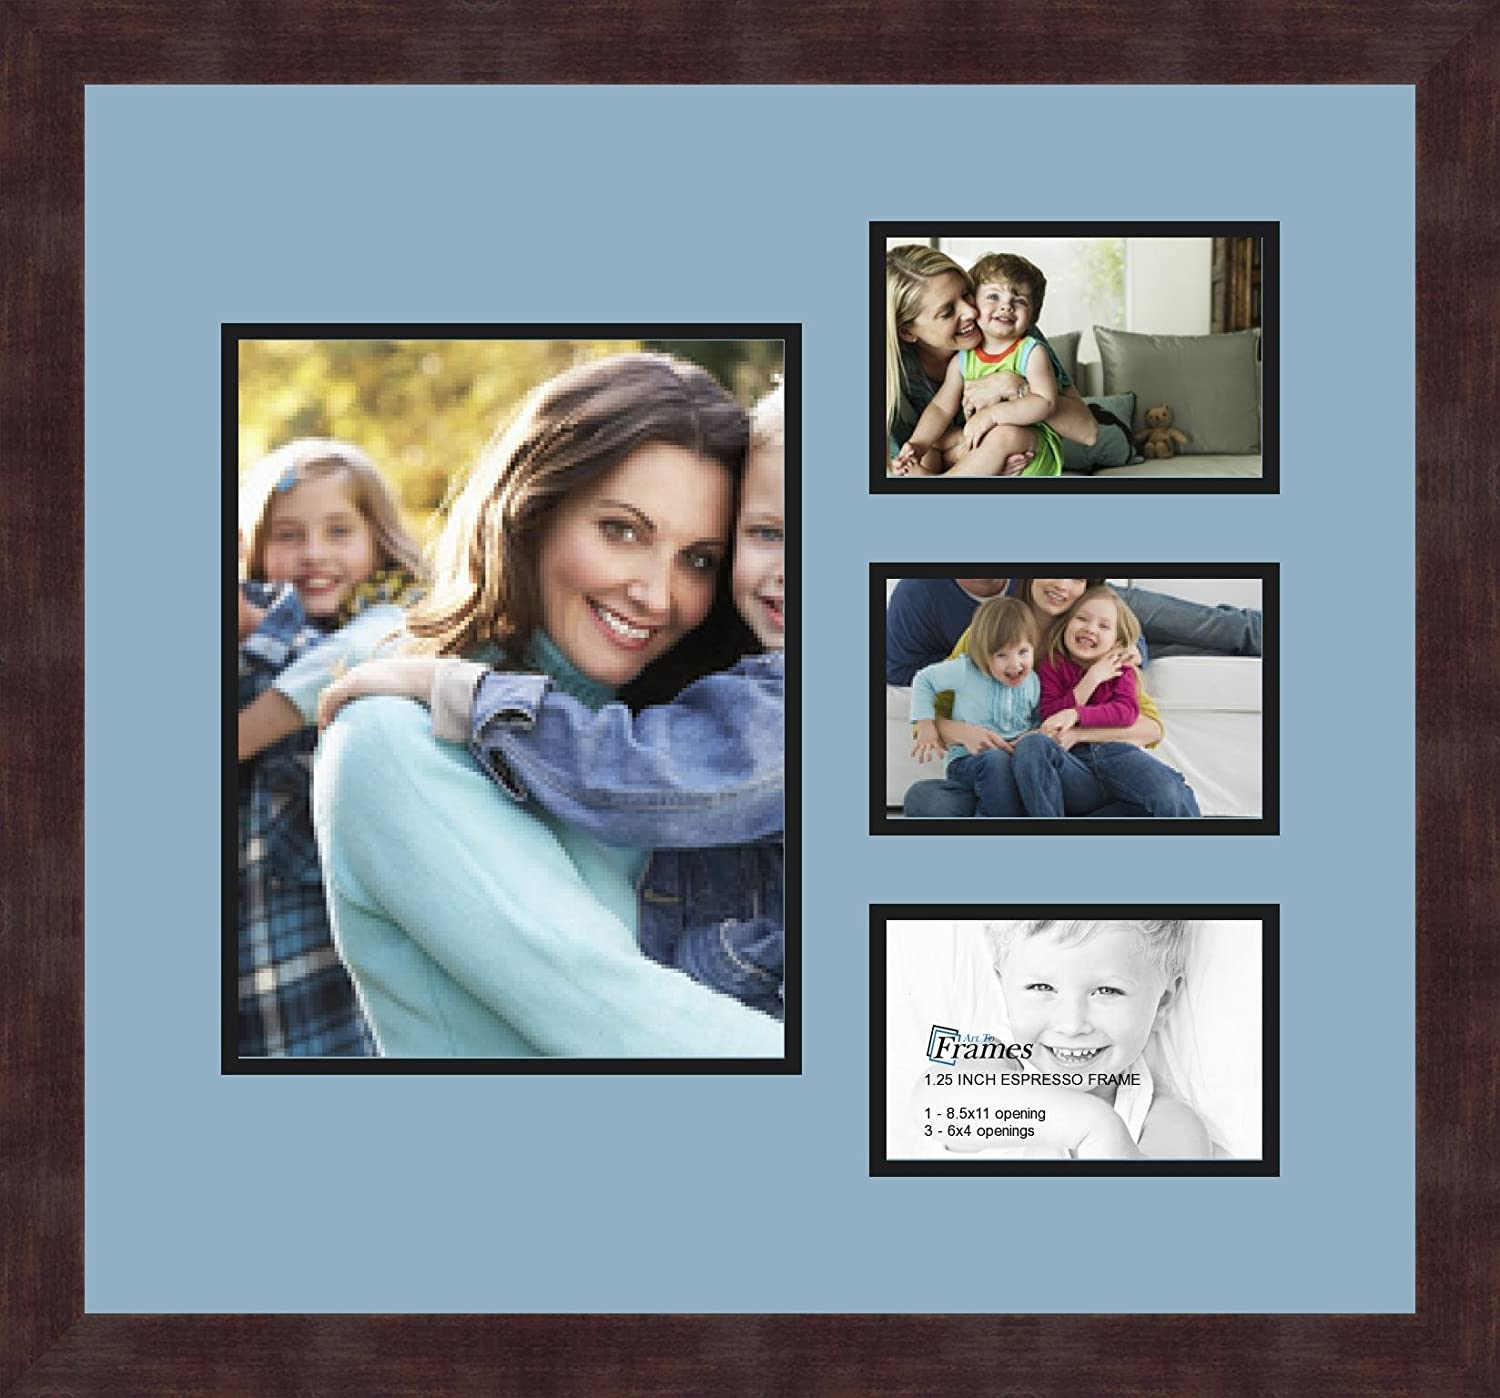 Art to Frames Double-Multimat-1108-716//89-FRBW26061 Collage Frame Photo Mat Double Mat with 1-8.5x11 and 3-4x6 Openings and Espresso Frame